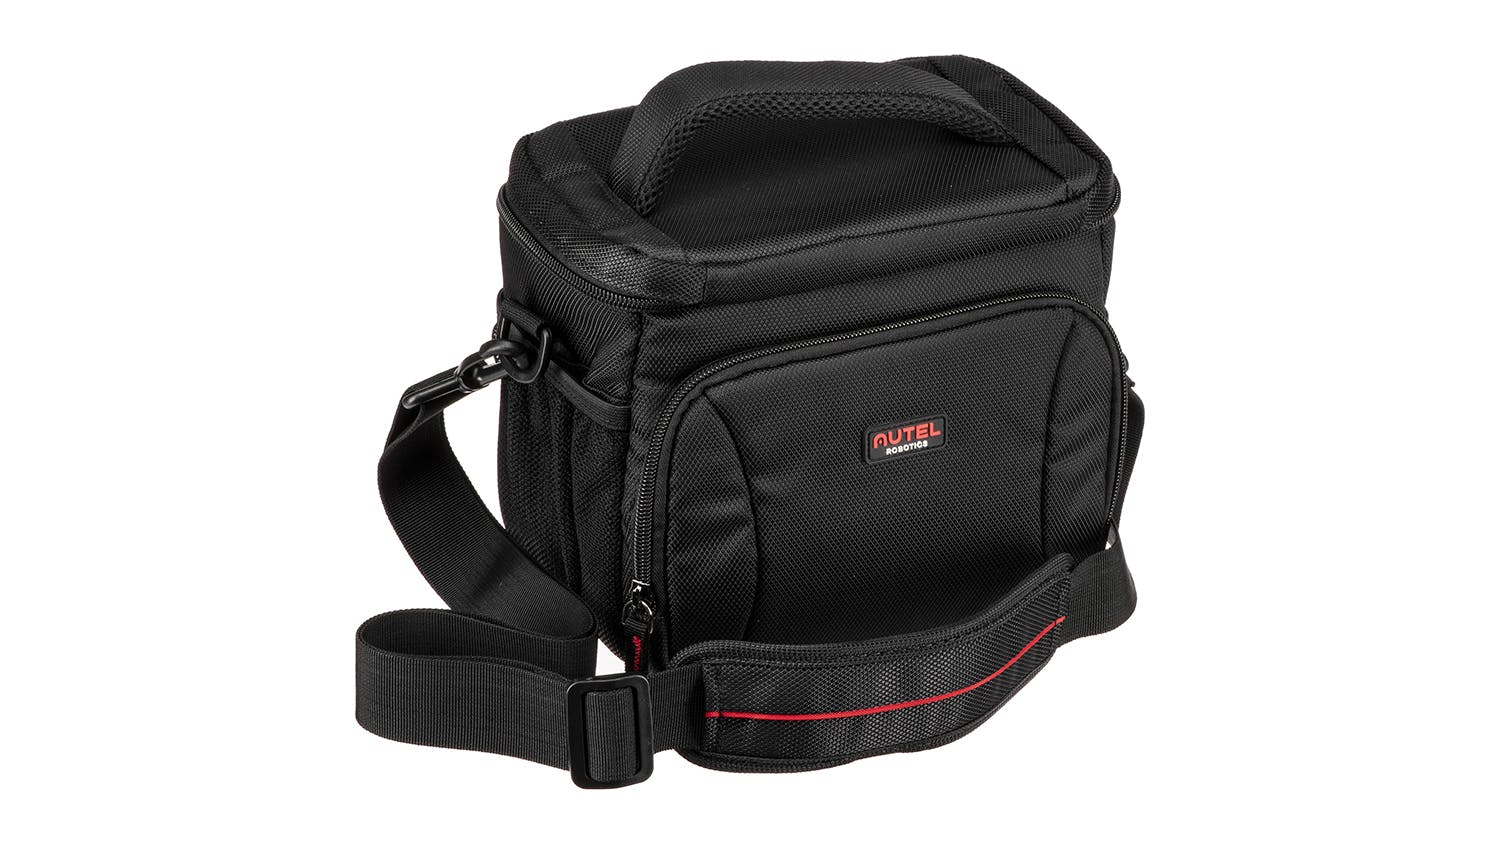 Autel Robotics Shoulder Bag for Evo 2 Drones